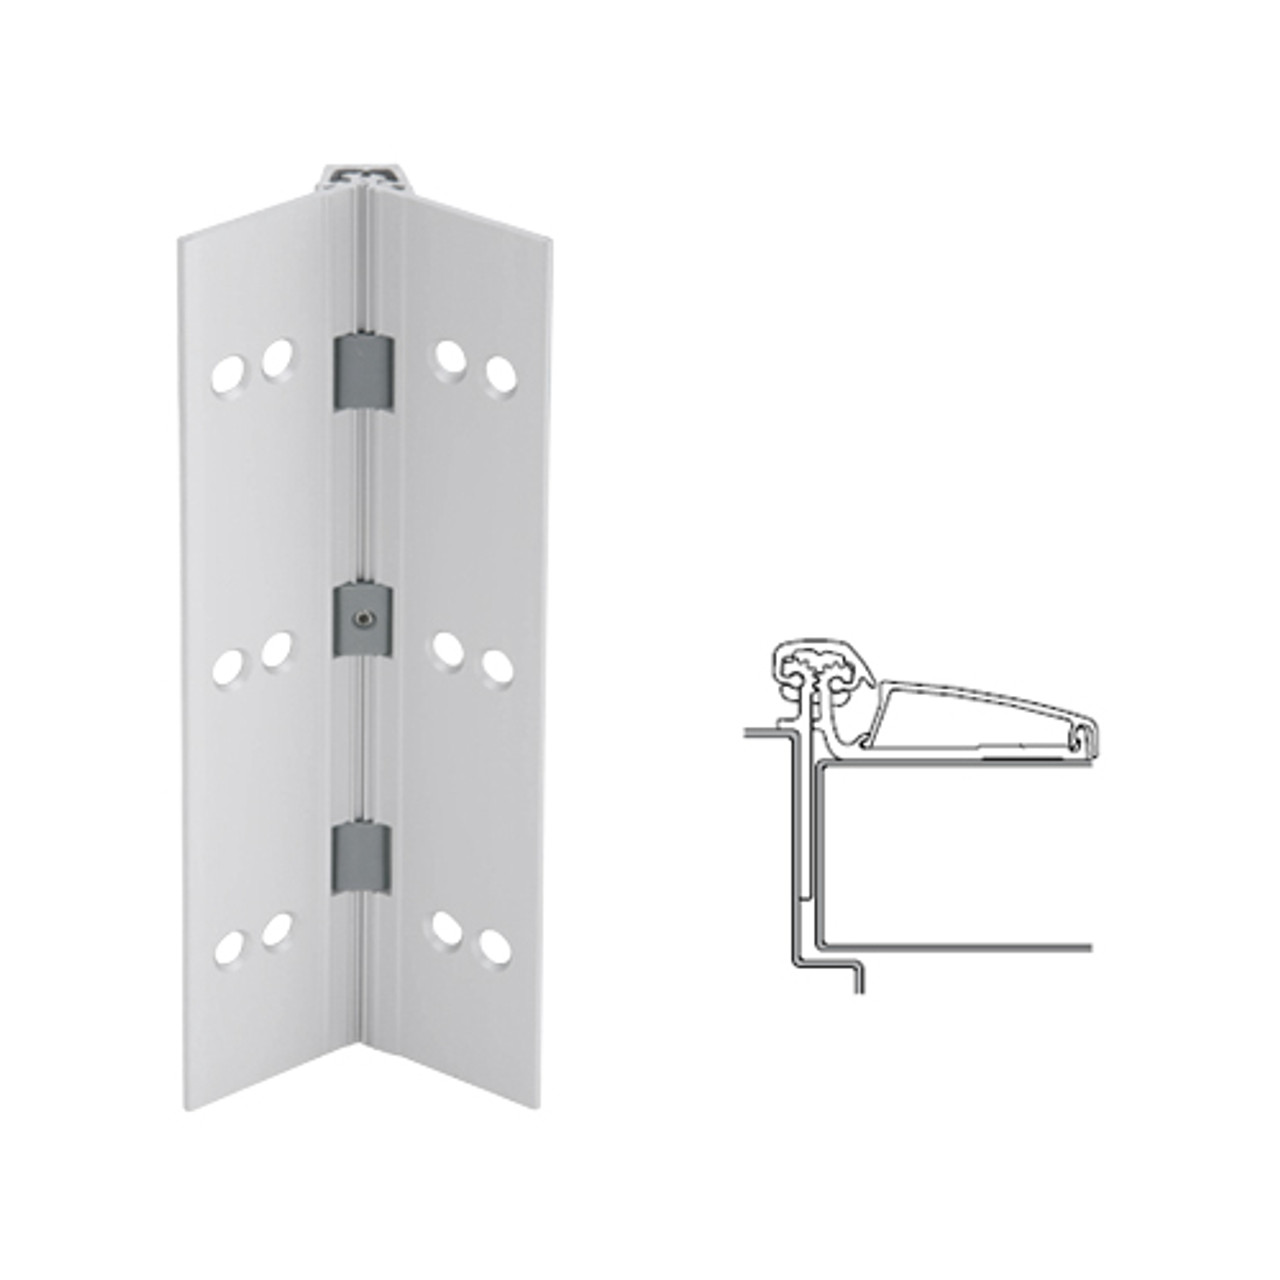 045XY-US28-85-SECHM IVES Adjustable Half Surface Continuous Geared Hinges with Security Screws - Hex Pin Drive in Satin Aluminum